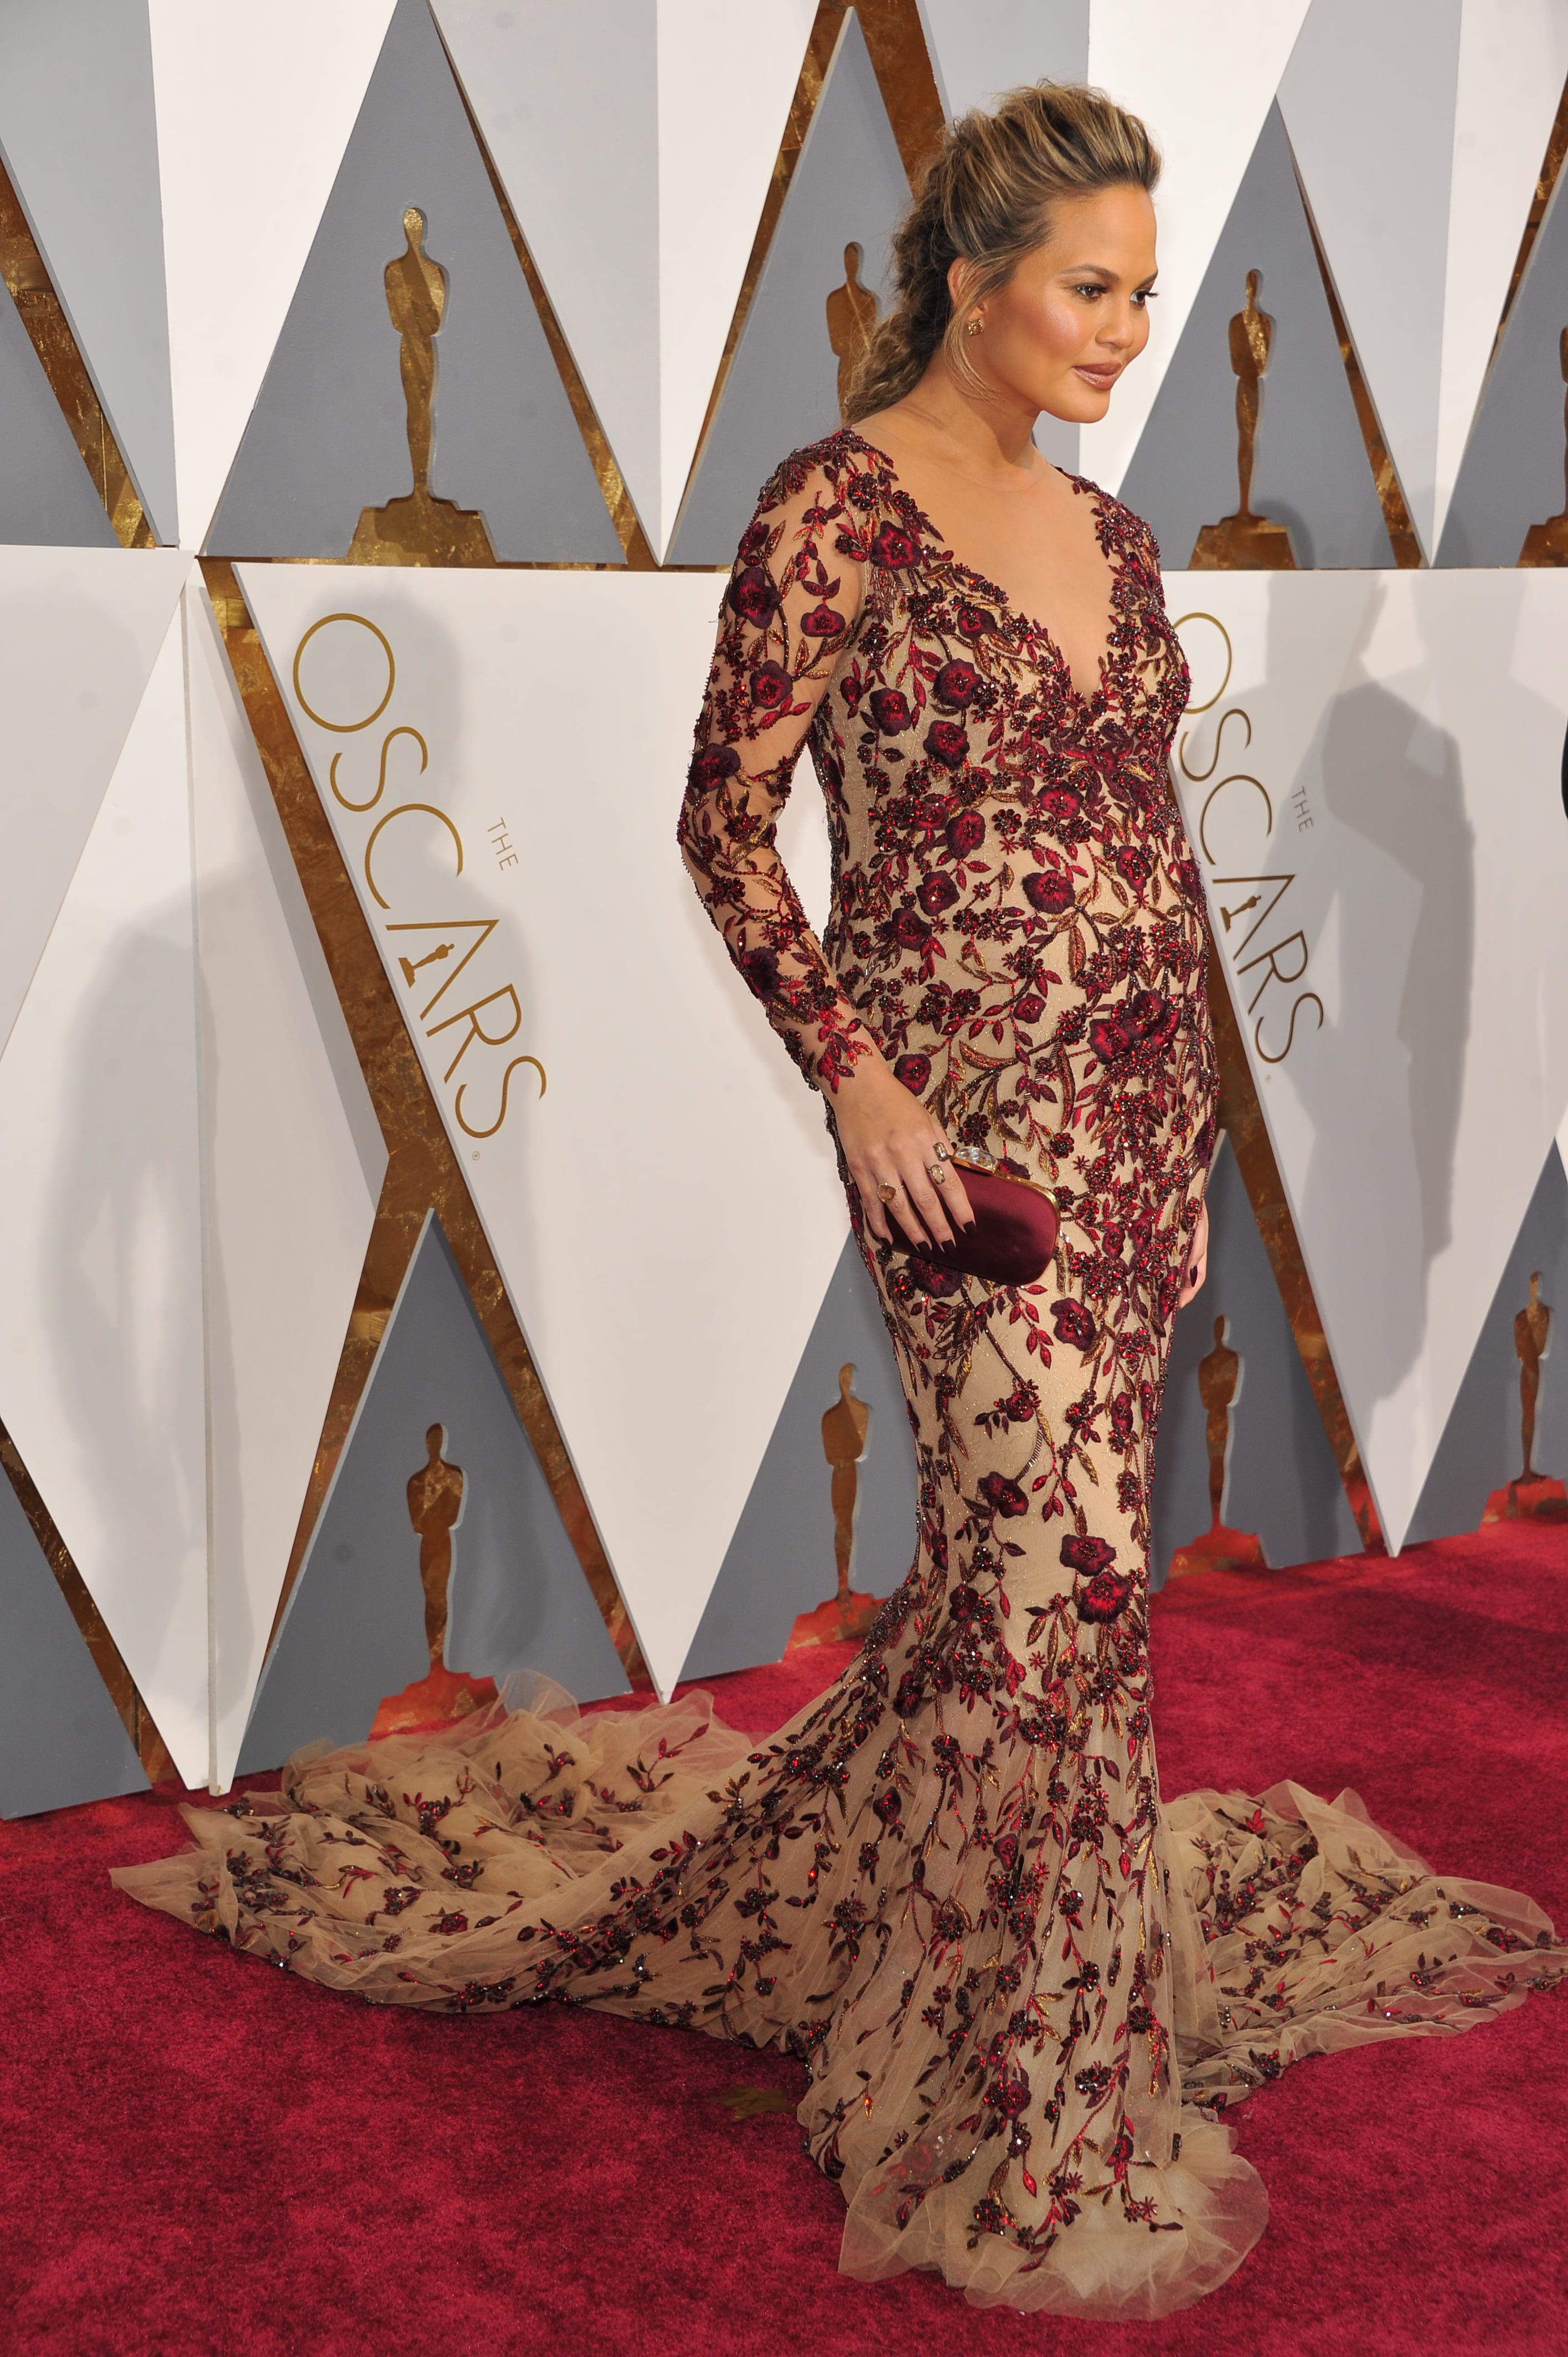 534f1e98a4f Chrissy Teigen wore a bump-skimming Marchesa dress that perfectly hugged  her pregnancy curves at